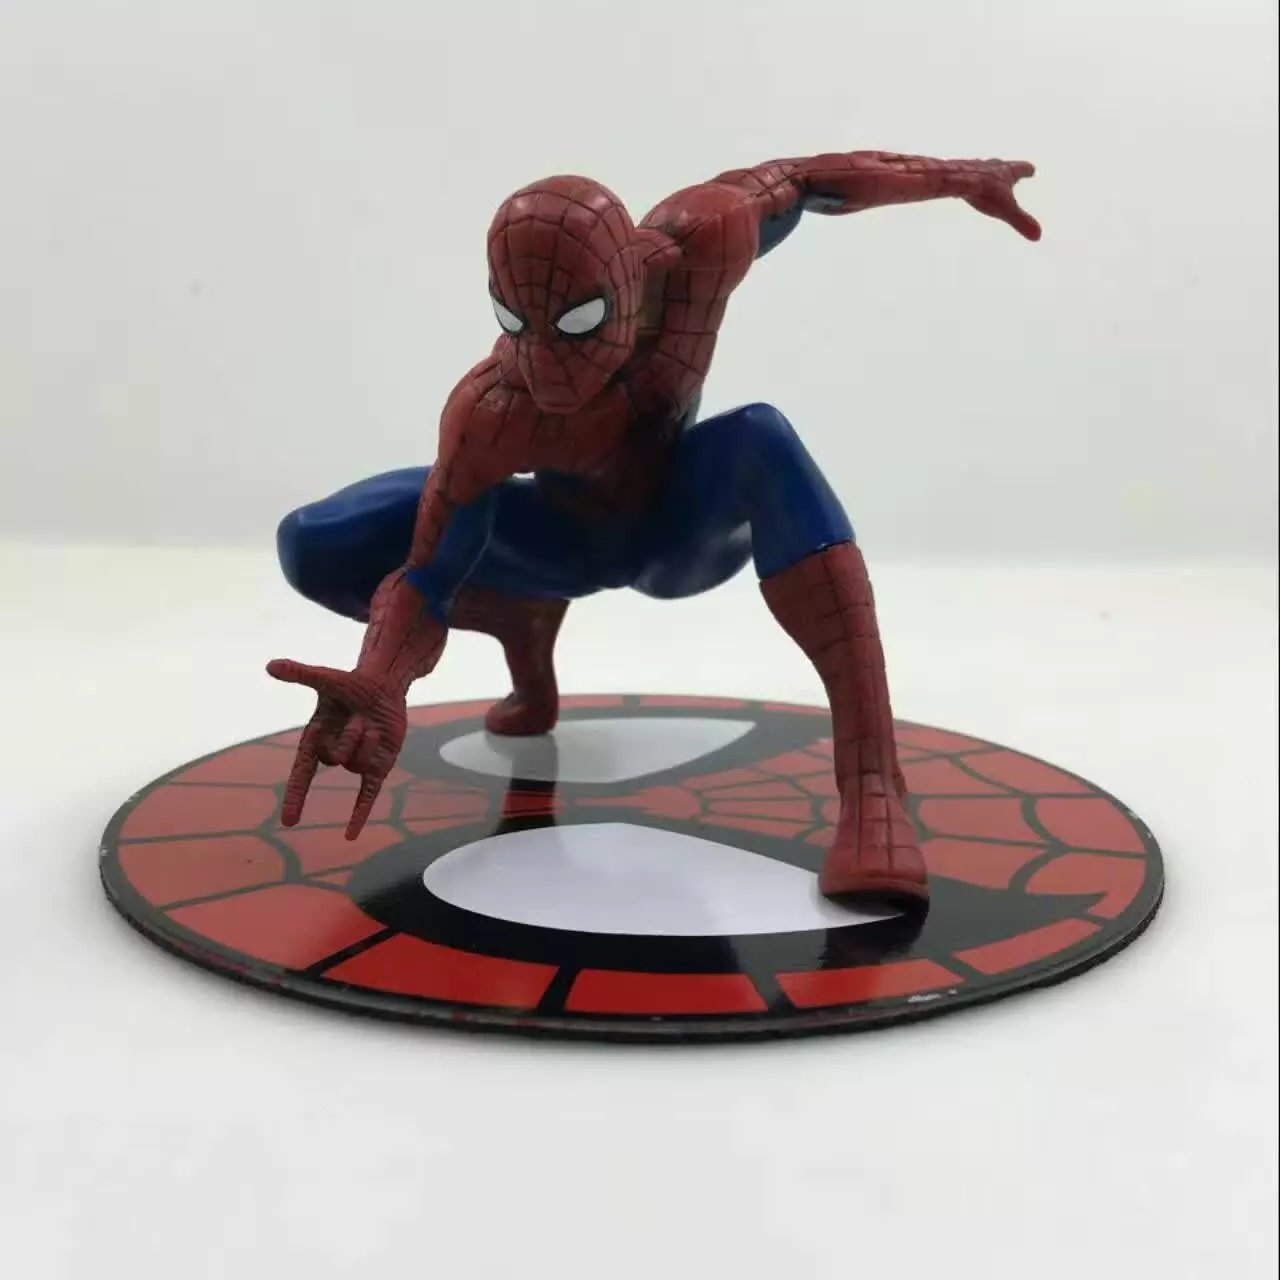 QICSYXJ Gift Marvel Superhero Action Figure Collection The Amazing Spider Man 12cm Squat Spiderman Model Decorations uk standard remote touch switch black crystal glass panel 2 gang 1 way control wall with led indicator makerele